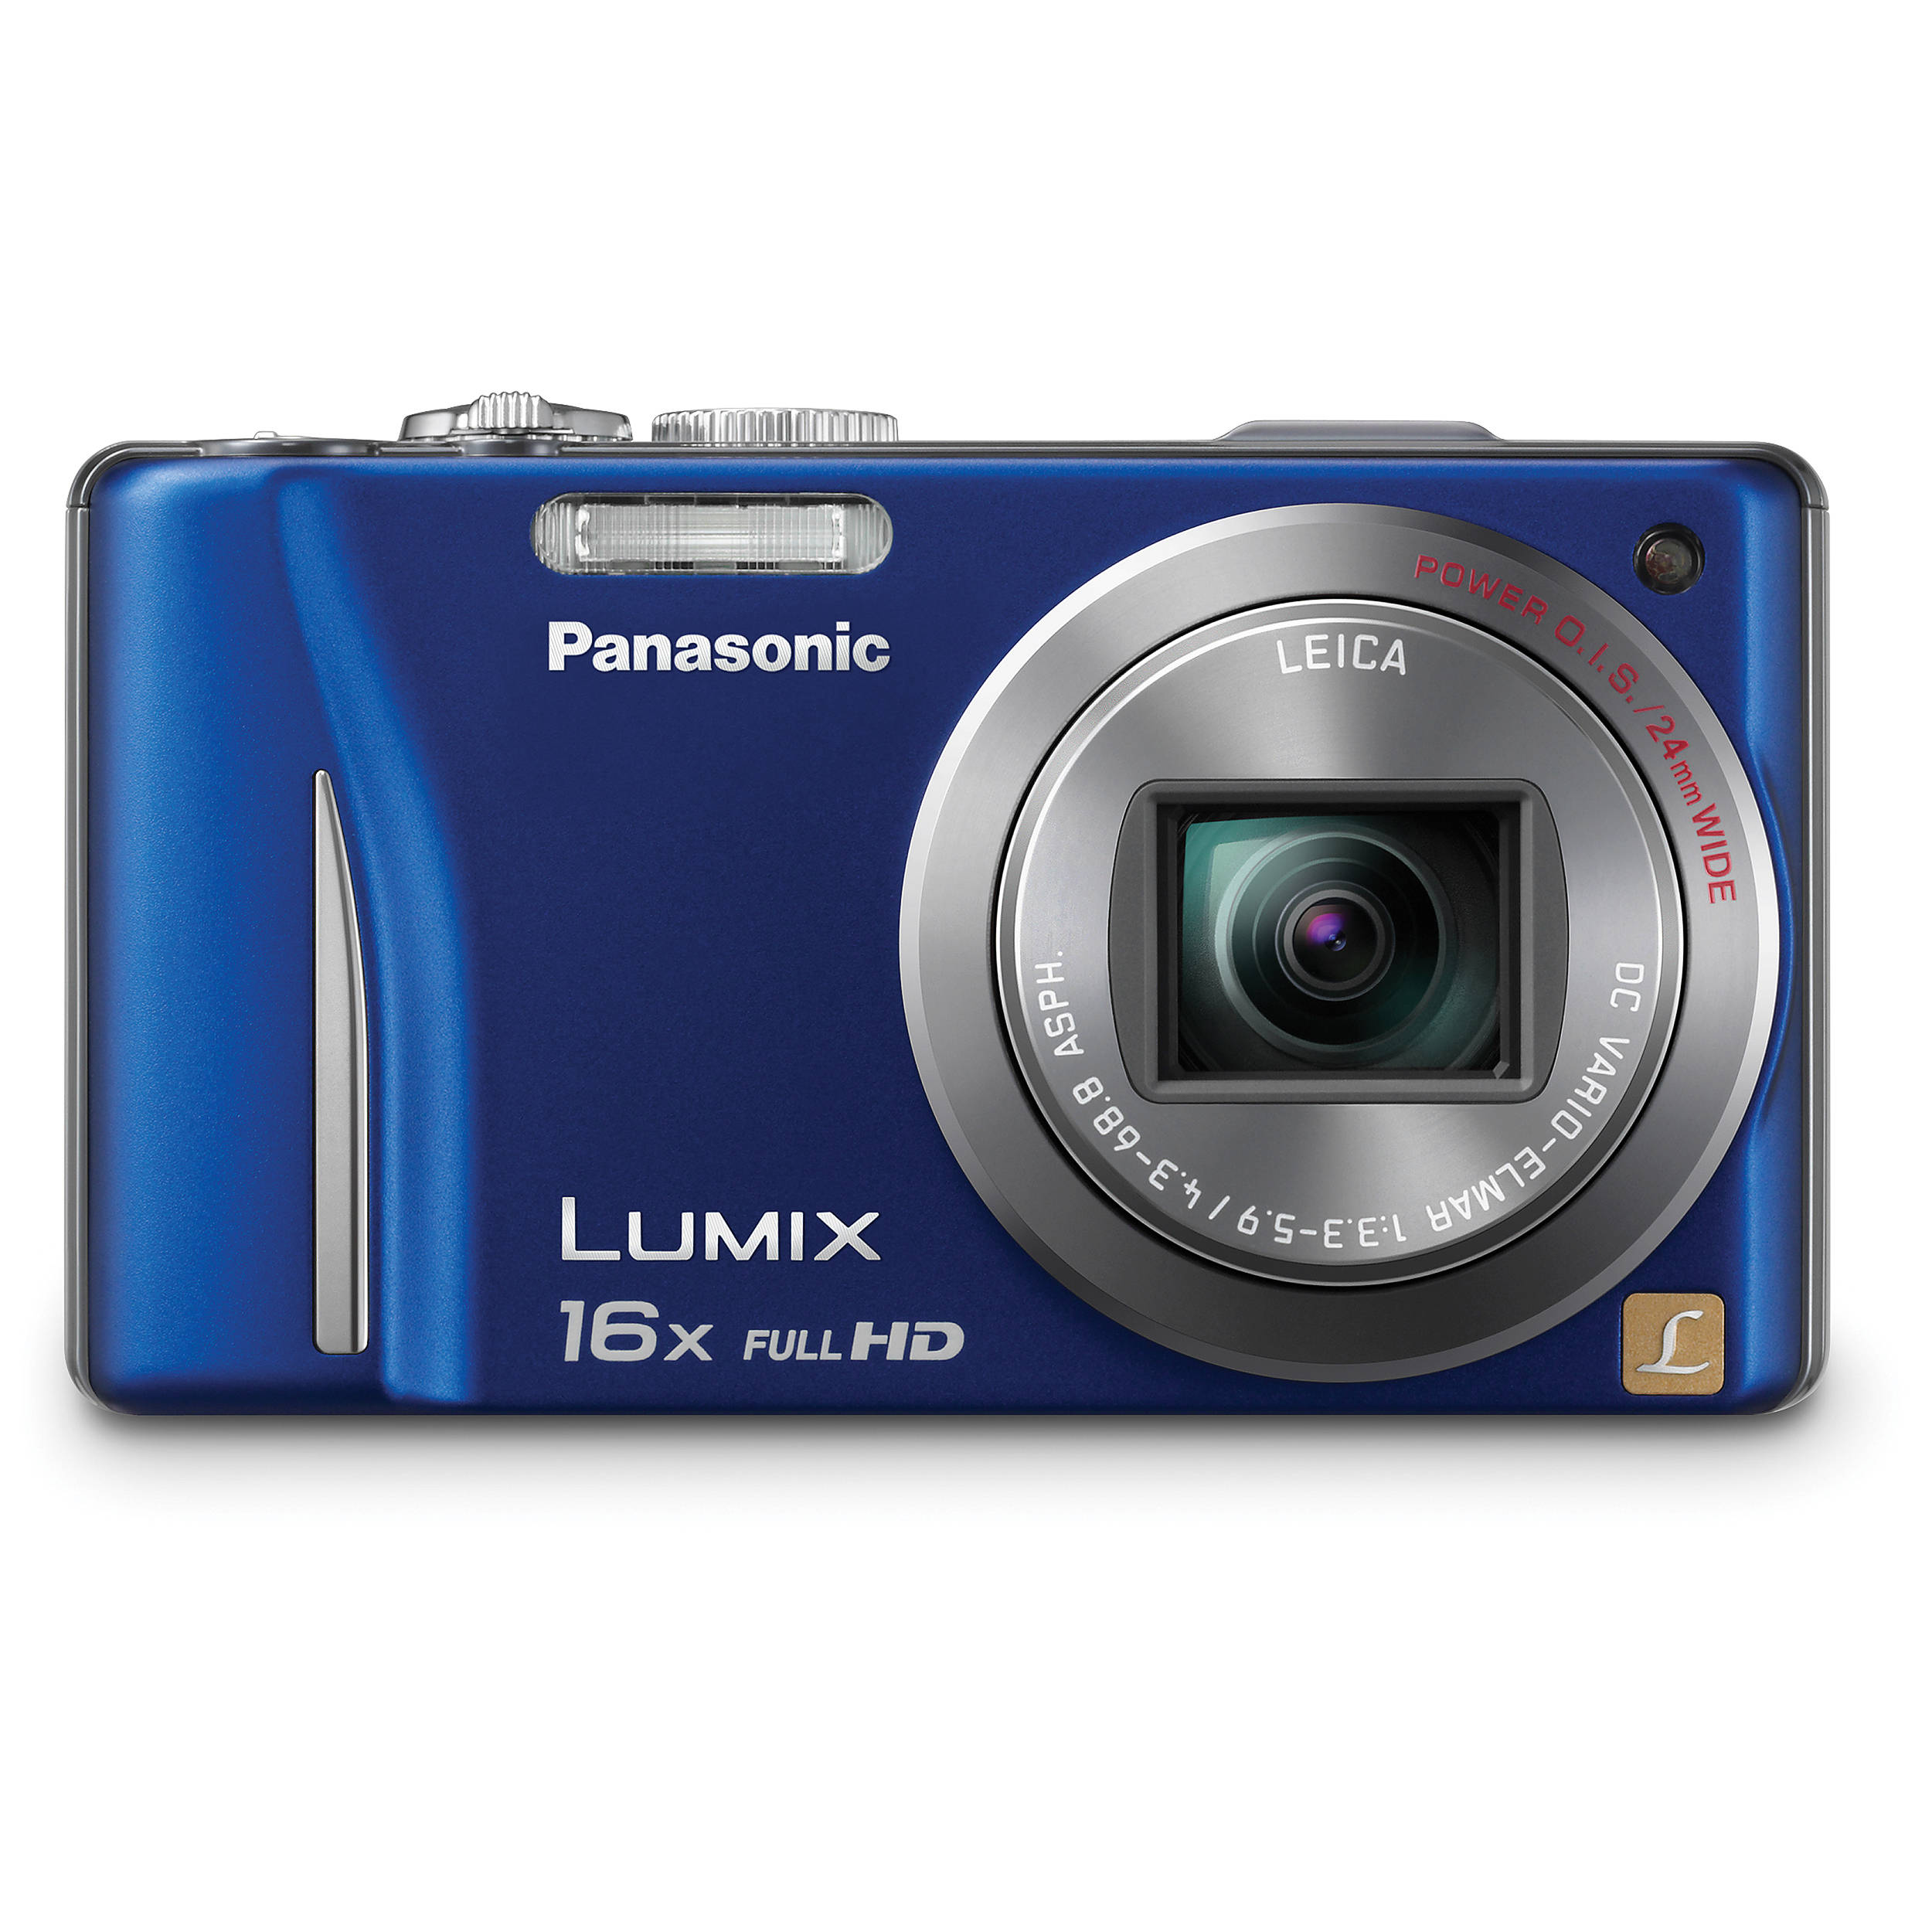 panasonic lumix dmc zs10 digital camera blue dmc zs10a b h rh bhphotovideo com Panasonic Lumix Dmc-Fz1000 panasonic dmc-tz10 user guide